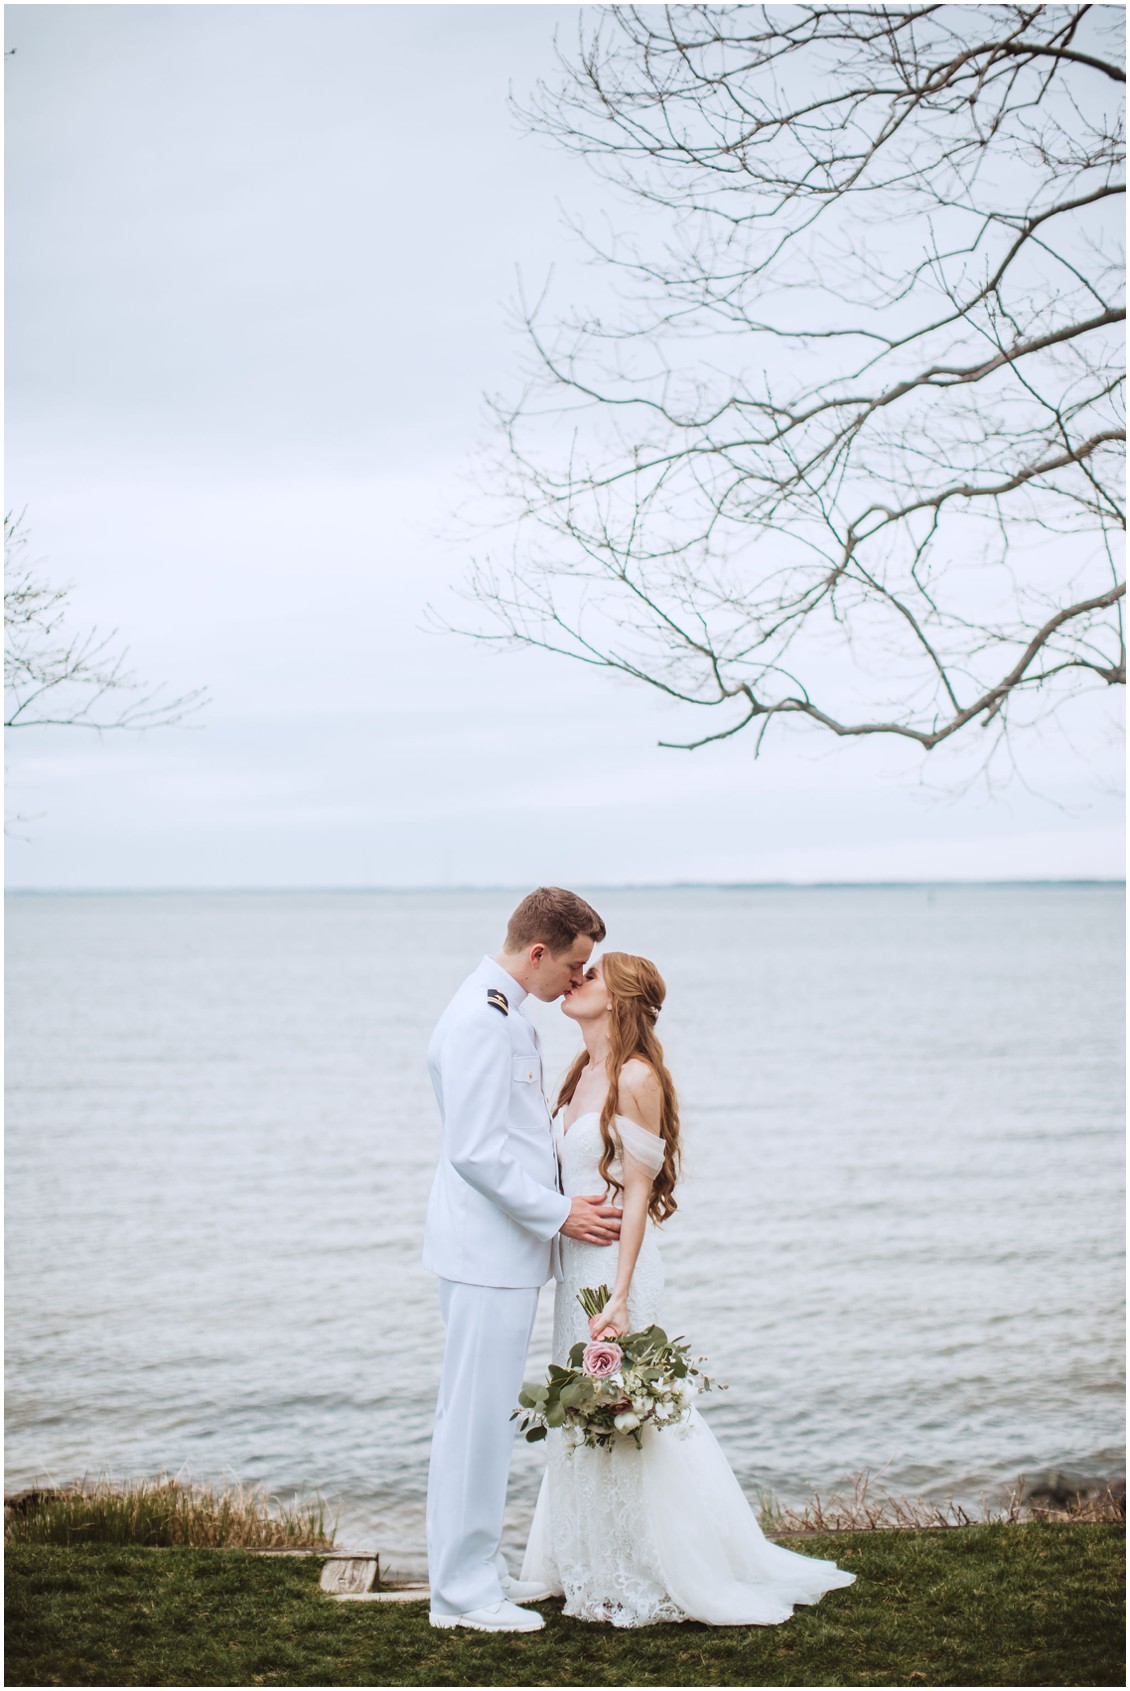 Bride and groom in naval sailor uniform kissing in front of Chesapeake Bay at sunset| My Eastern Shore Wedding | Chesapeake Bay Beach Club